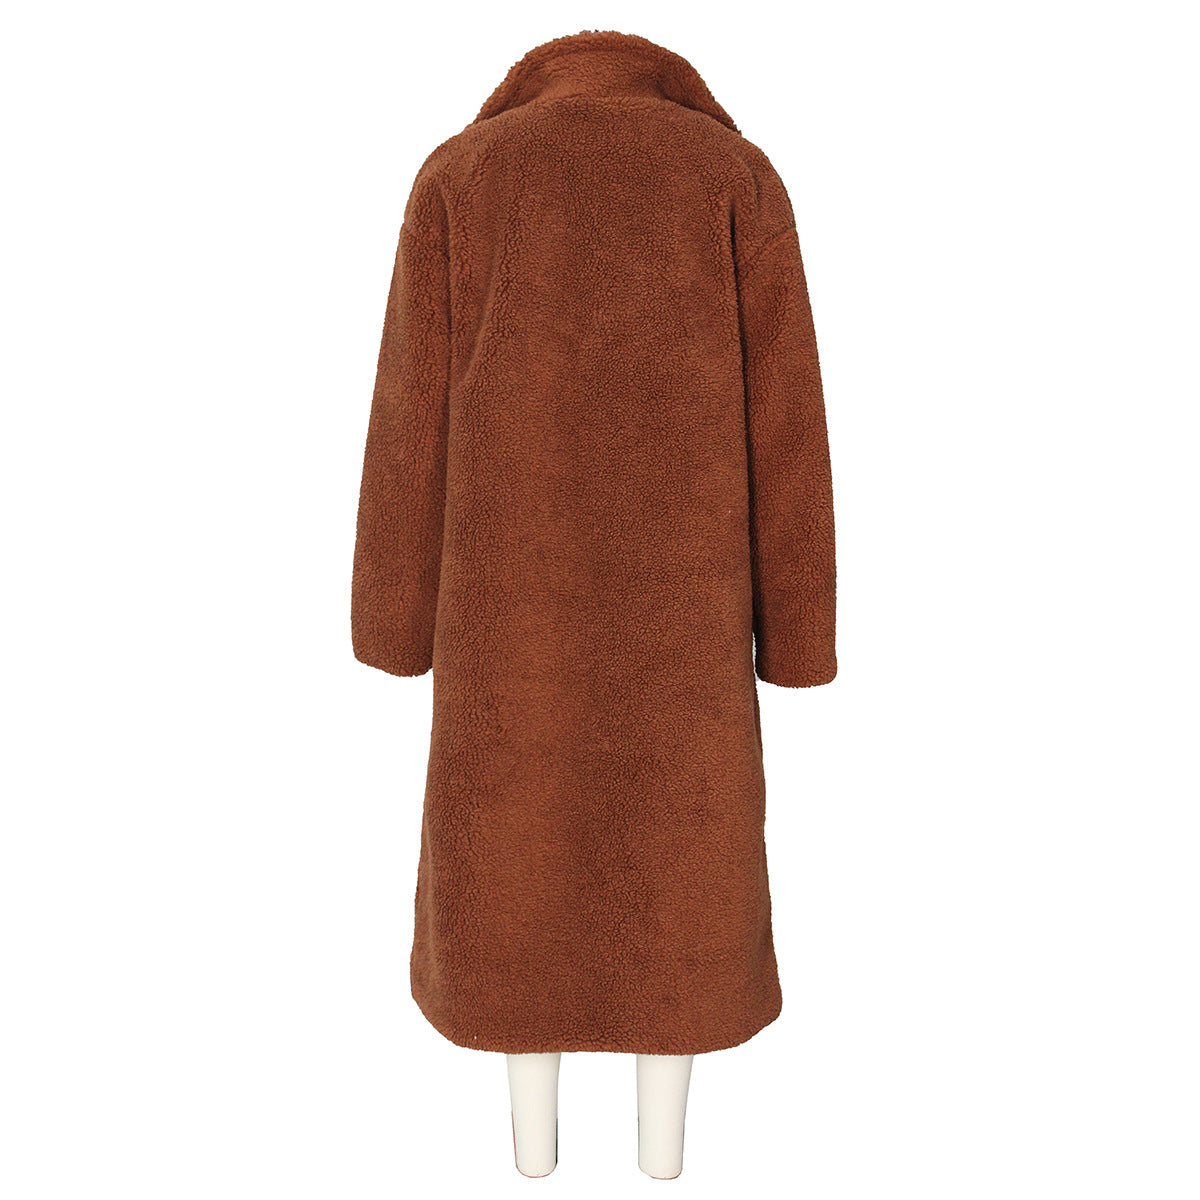 Teddy Lamb Jacket | Super Warm - Allures From Zenii